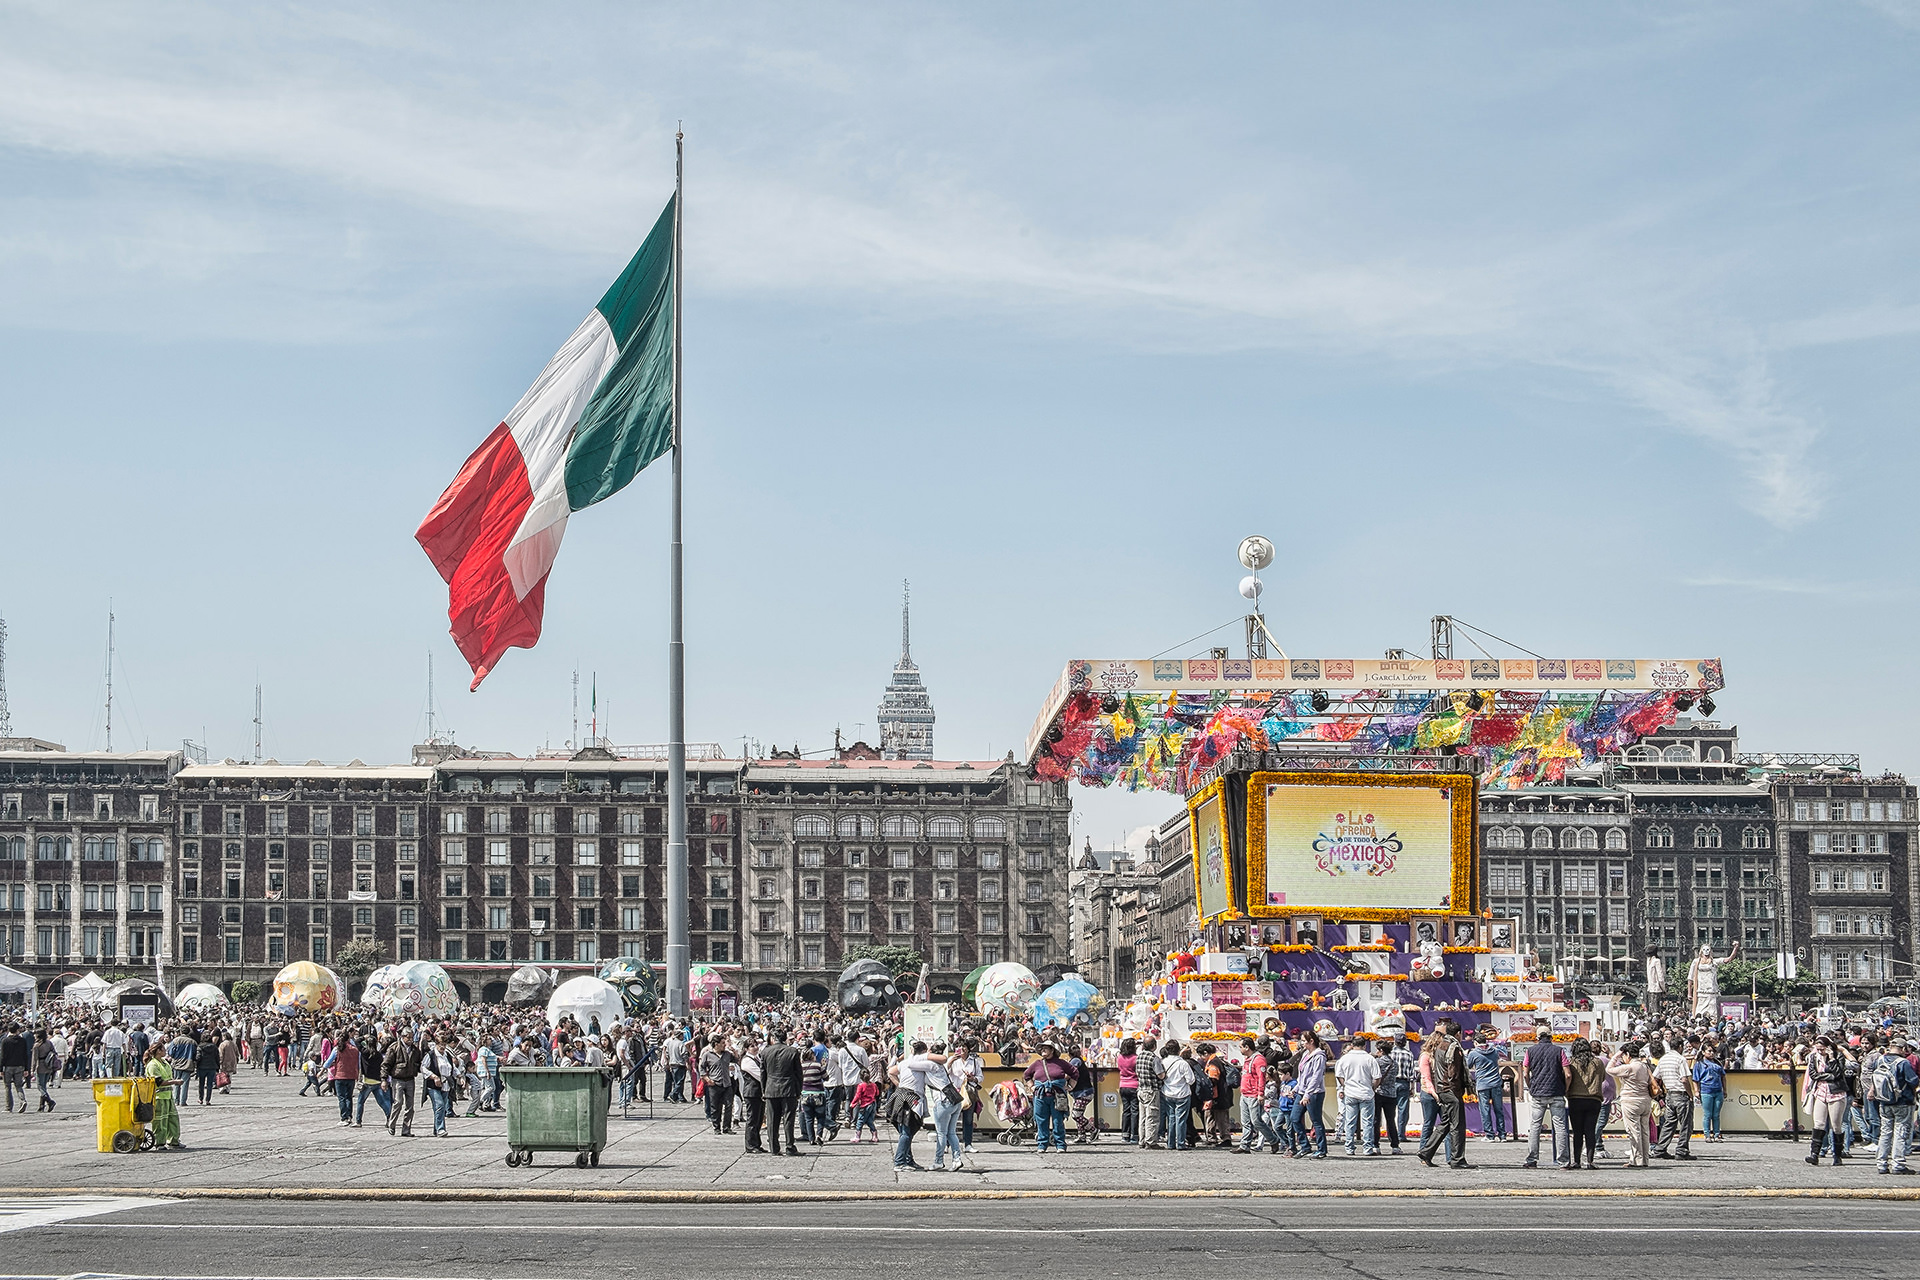 Zocalo in Mexico City at the Death Day